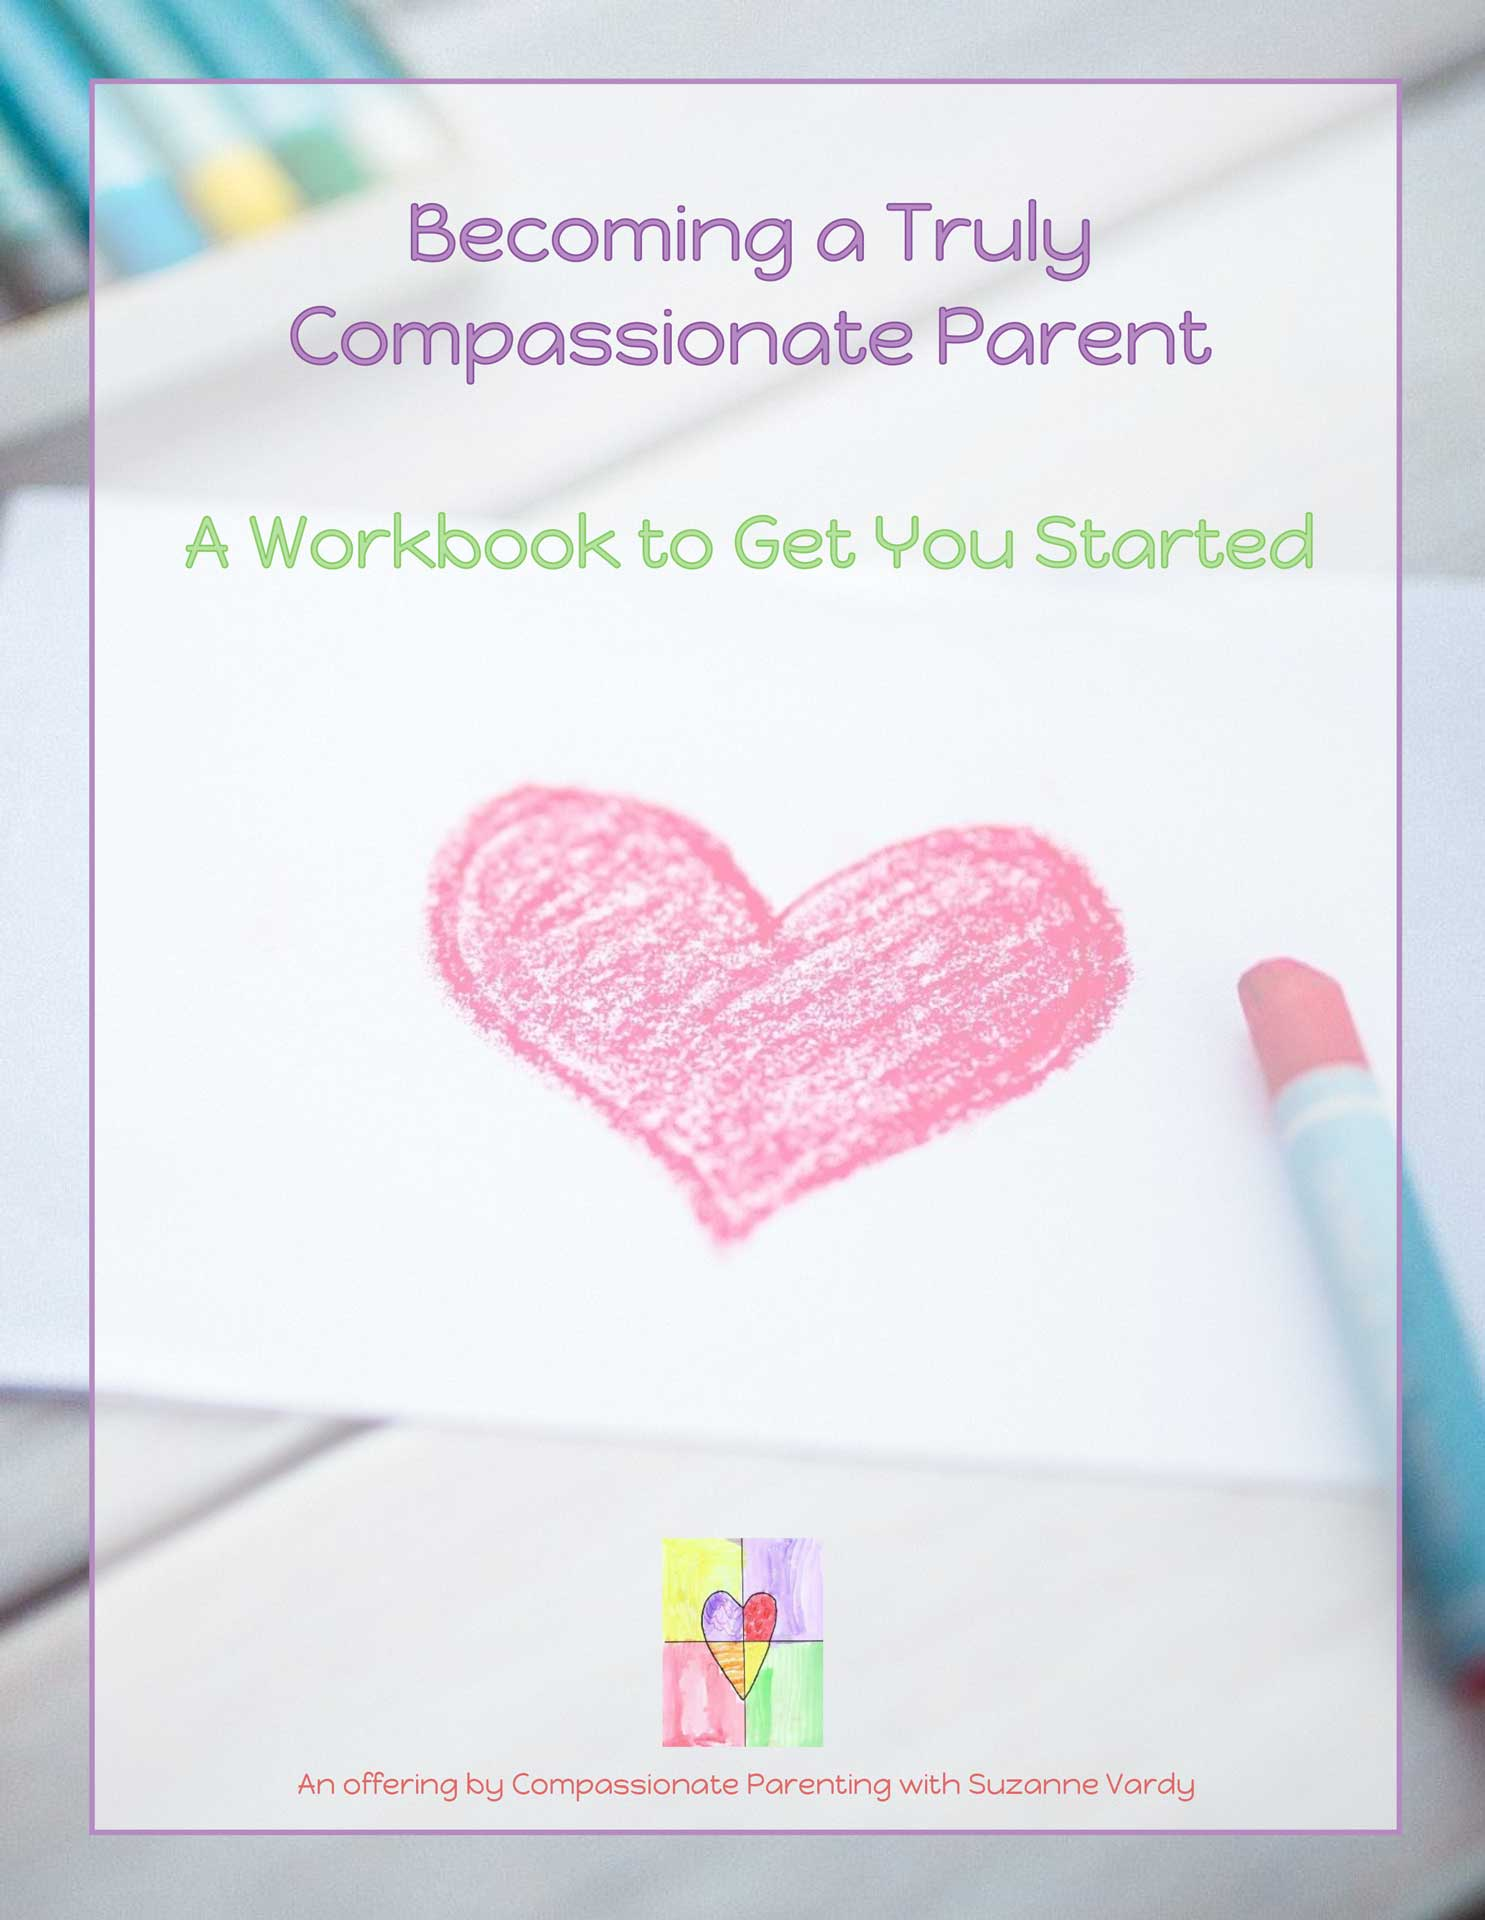 Image of the Compassionate Parenting Guide